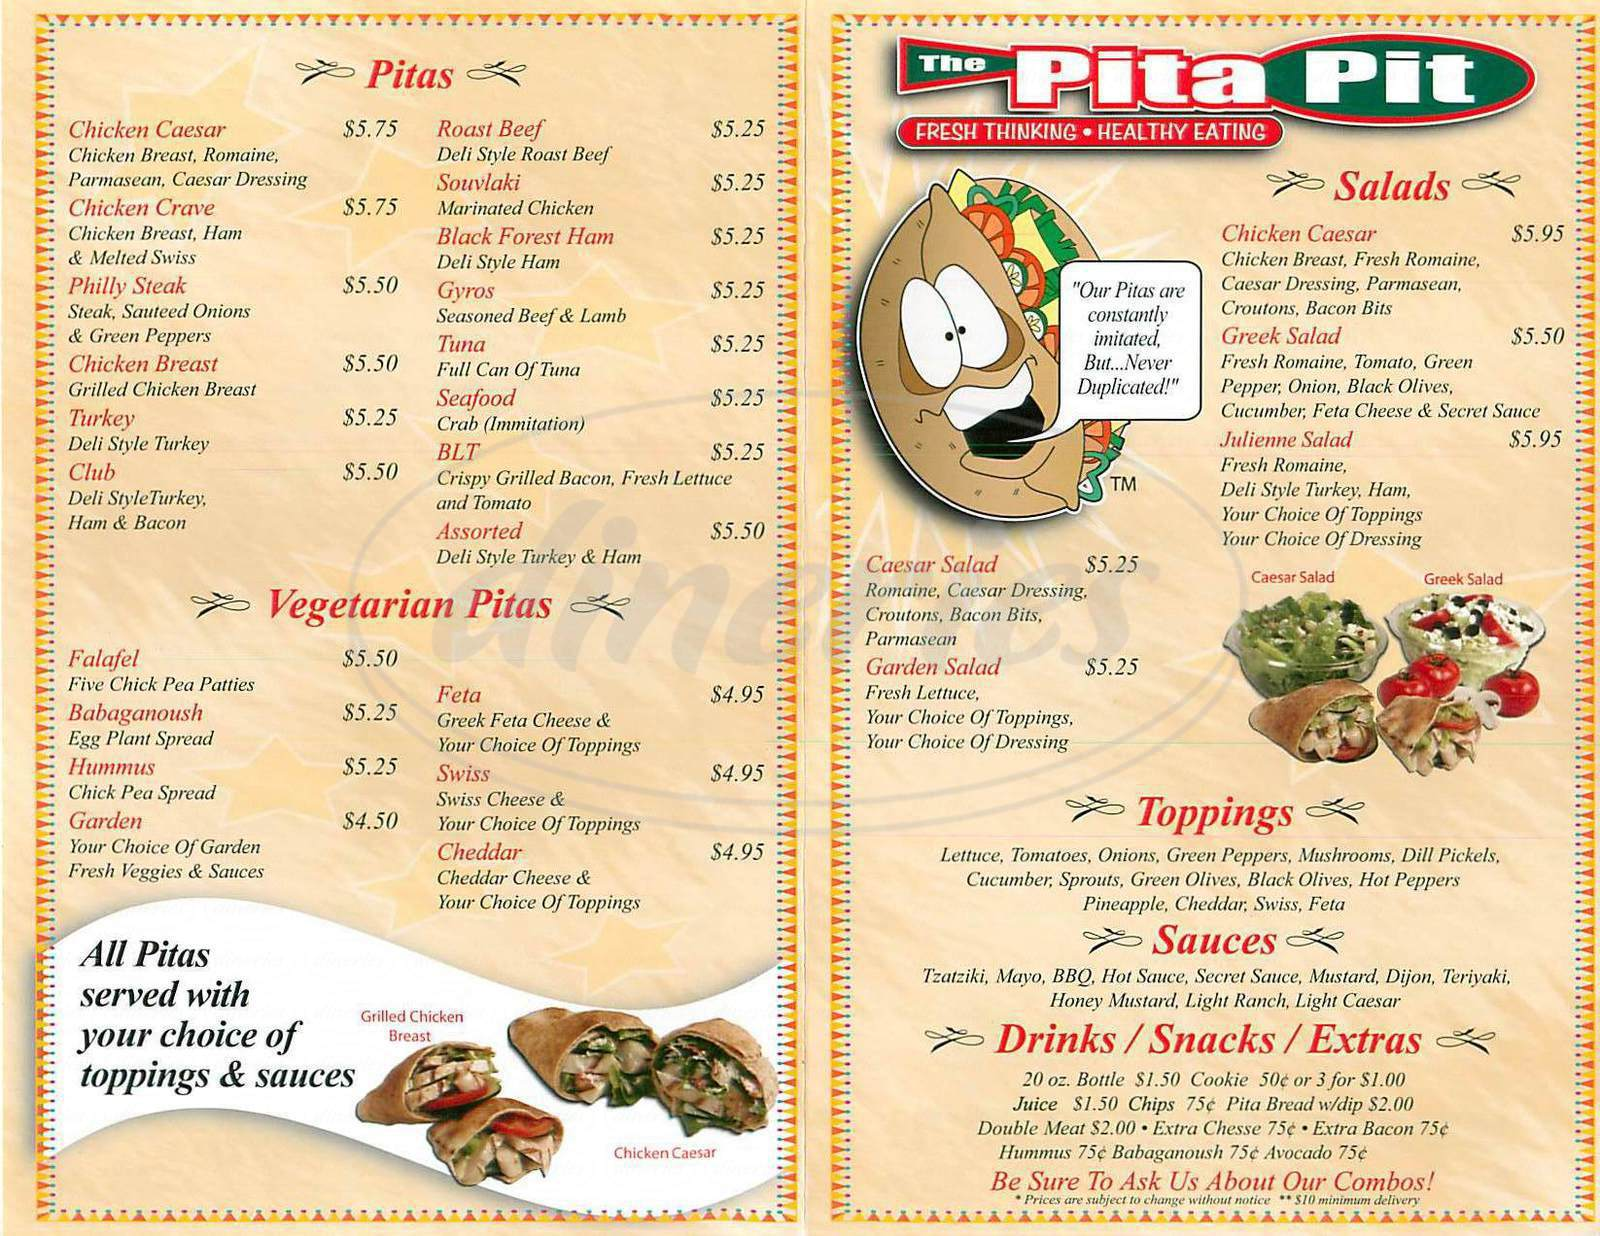 menu for The Pita Pit